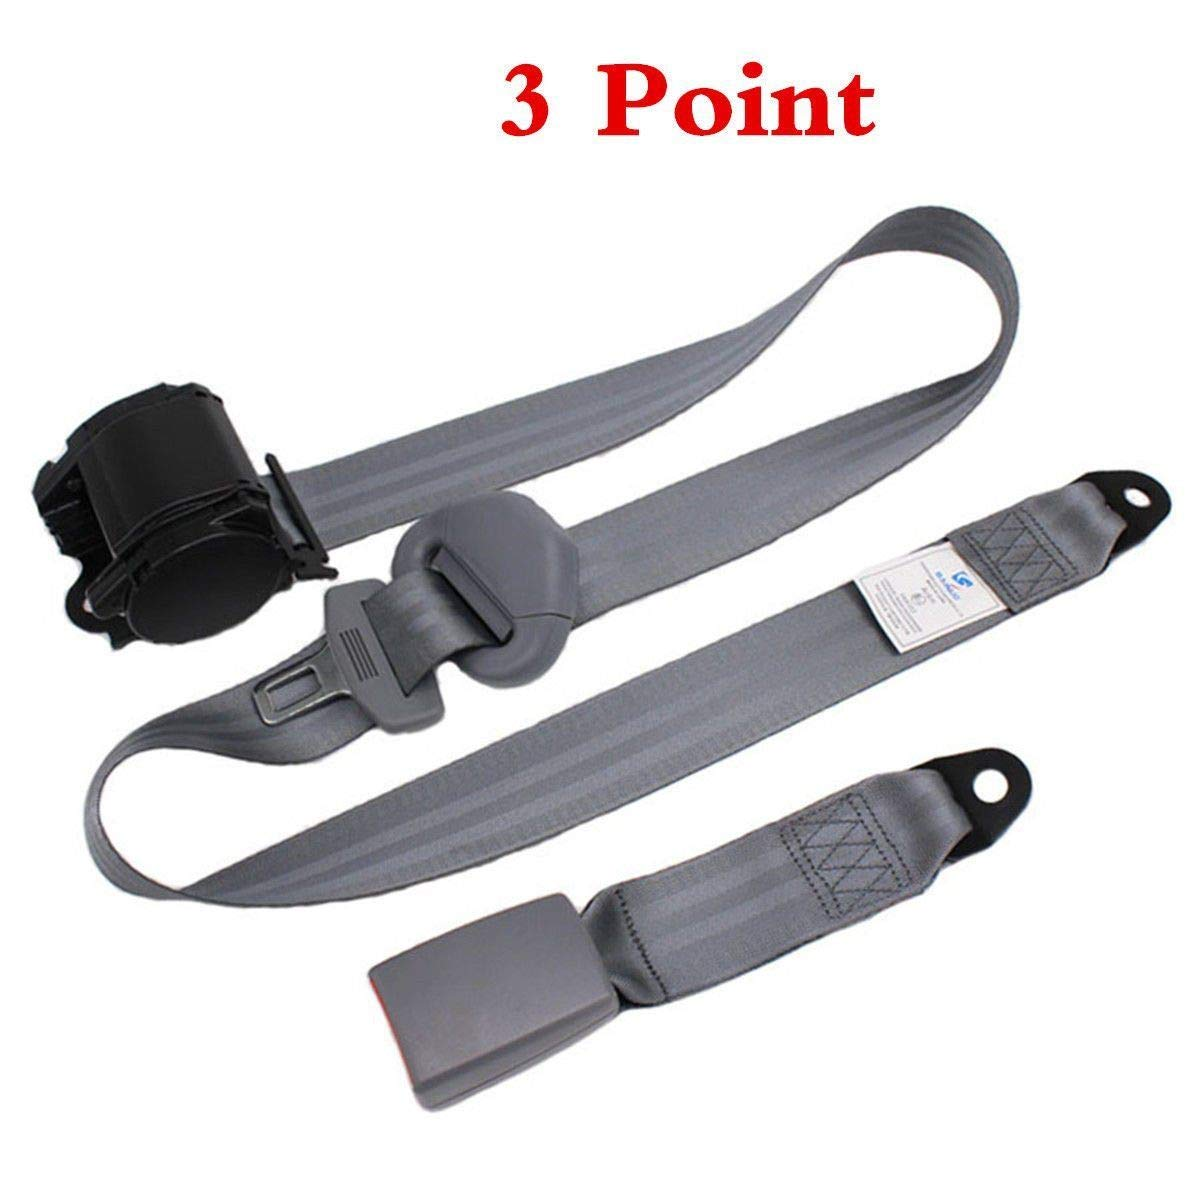 MB-THISTAR 1Set Gray Car Auto Vehicle Adjustable Retractable 3 Point Safety Seat Belt Strap